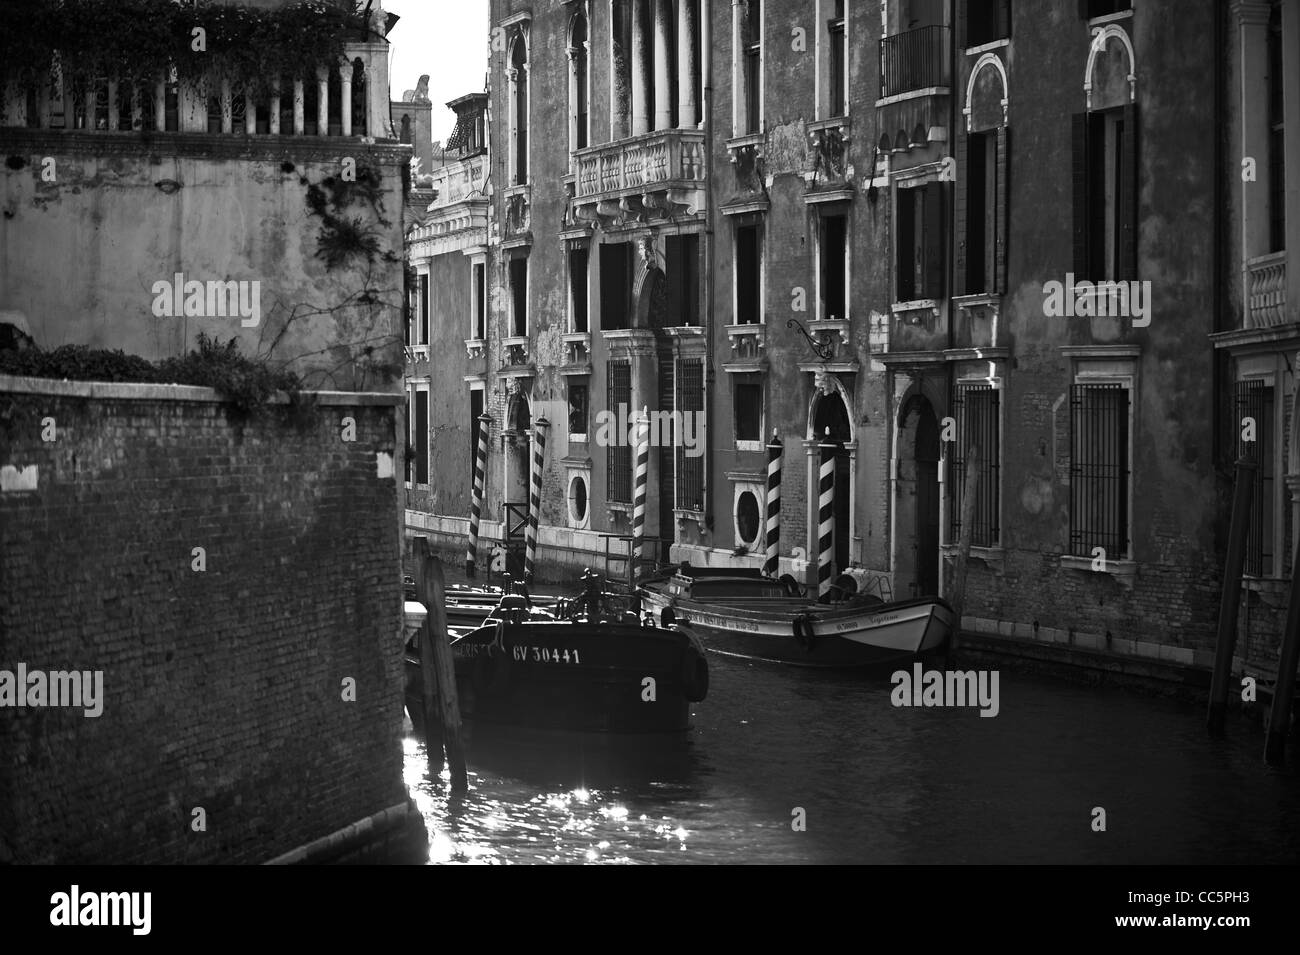 Black & White Detail of Venetian Canal with Boats - Stock Image